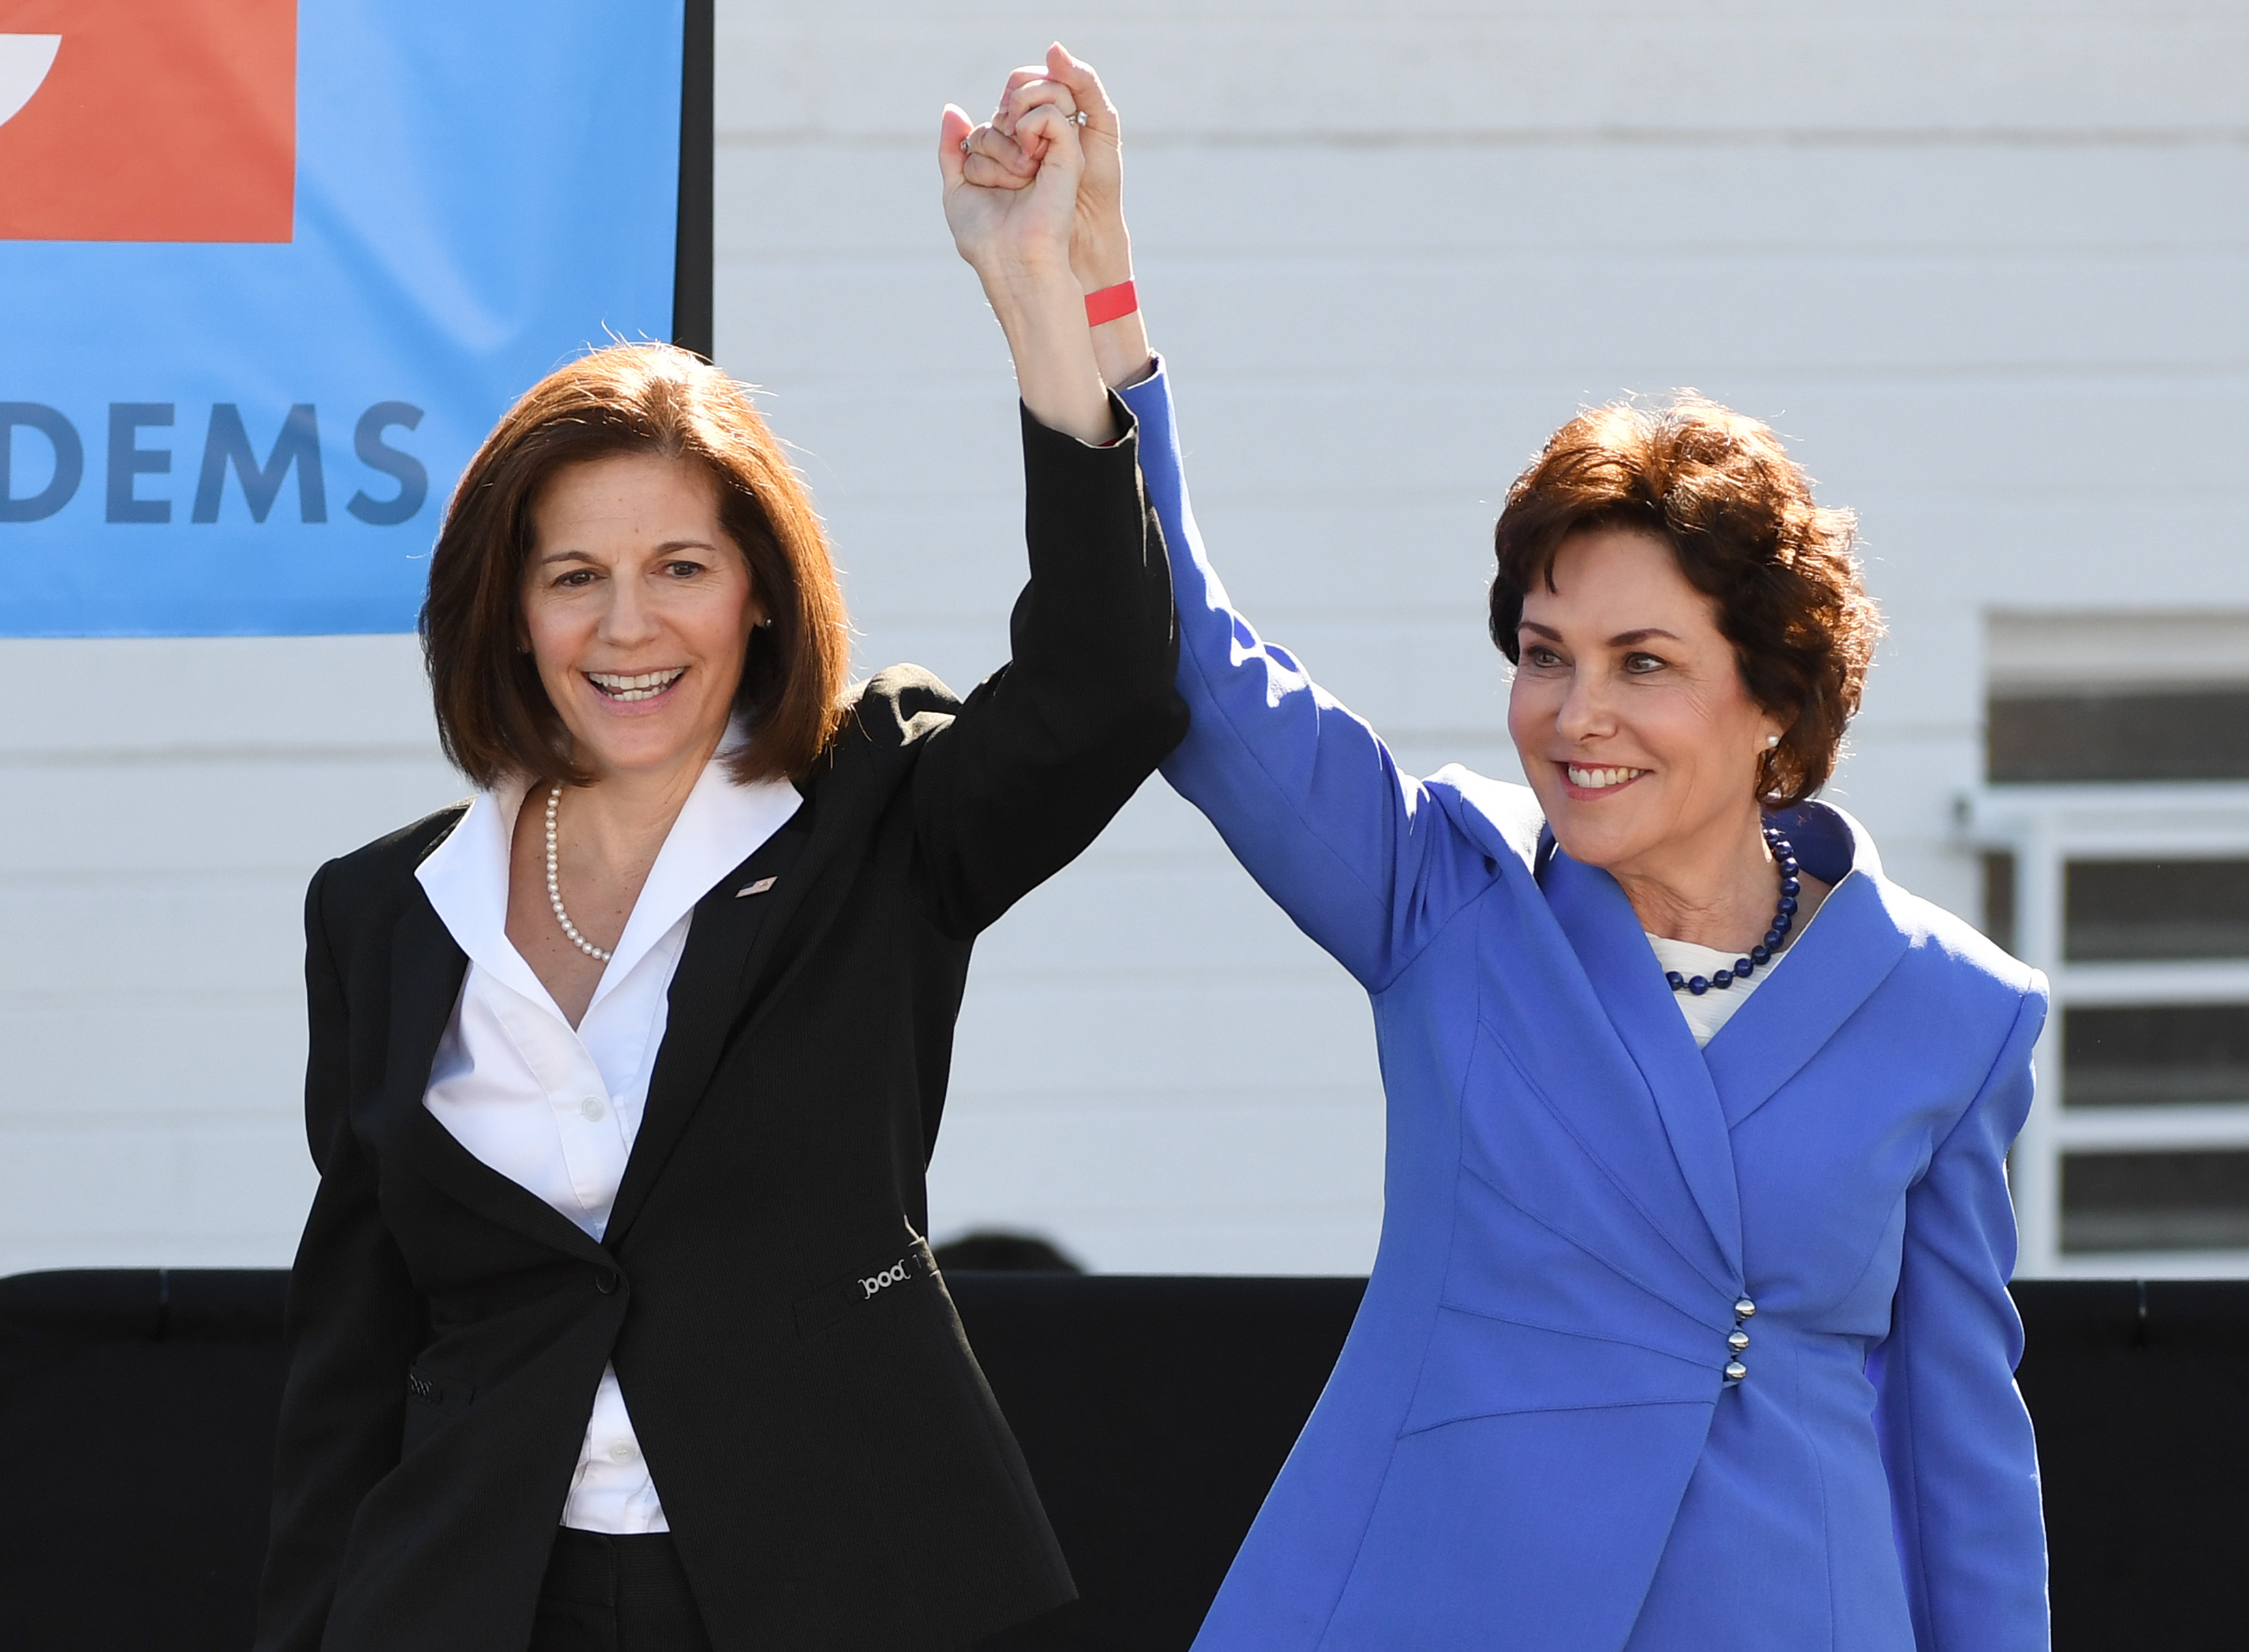 U.S. Sens. Catherine Cortez Masto (L) and Jacky Rosen of Nevada during a rally on October 20, 2018 in Las Vegas, Nevada. (Ethan Miller/Getty Images)